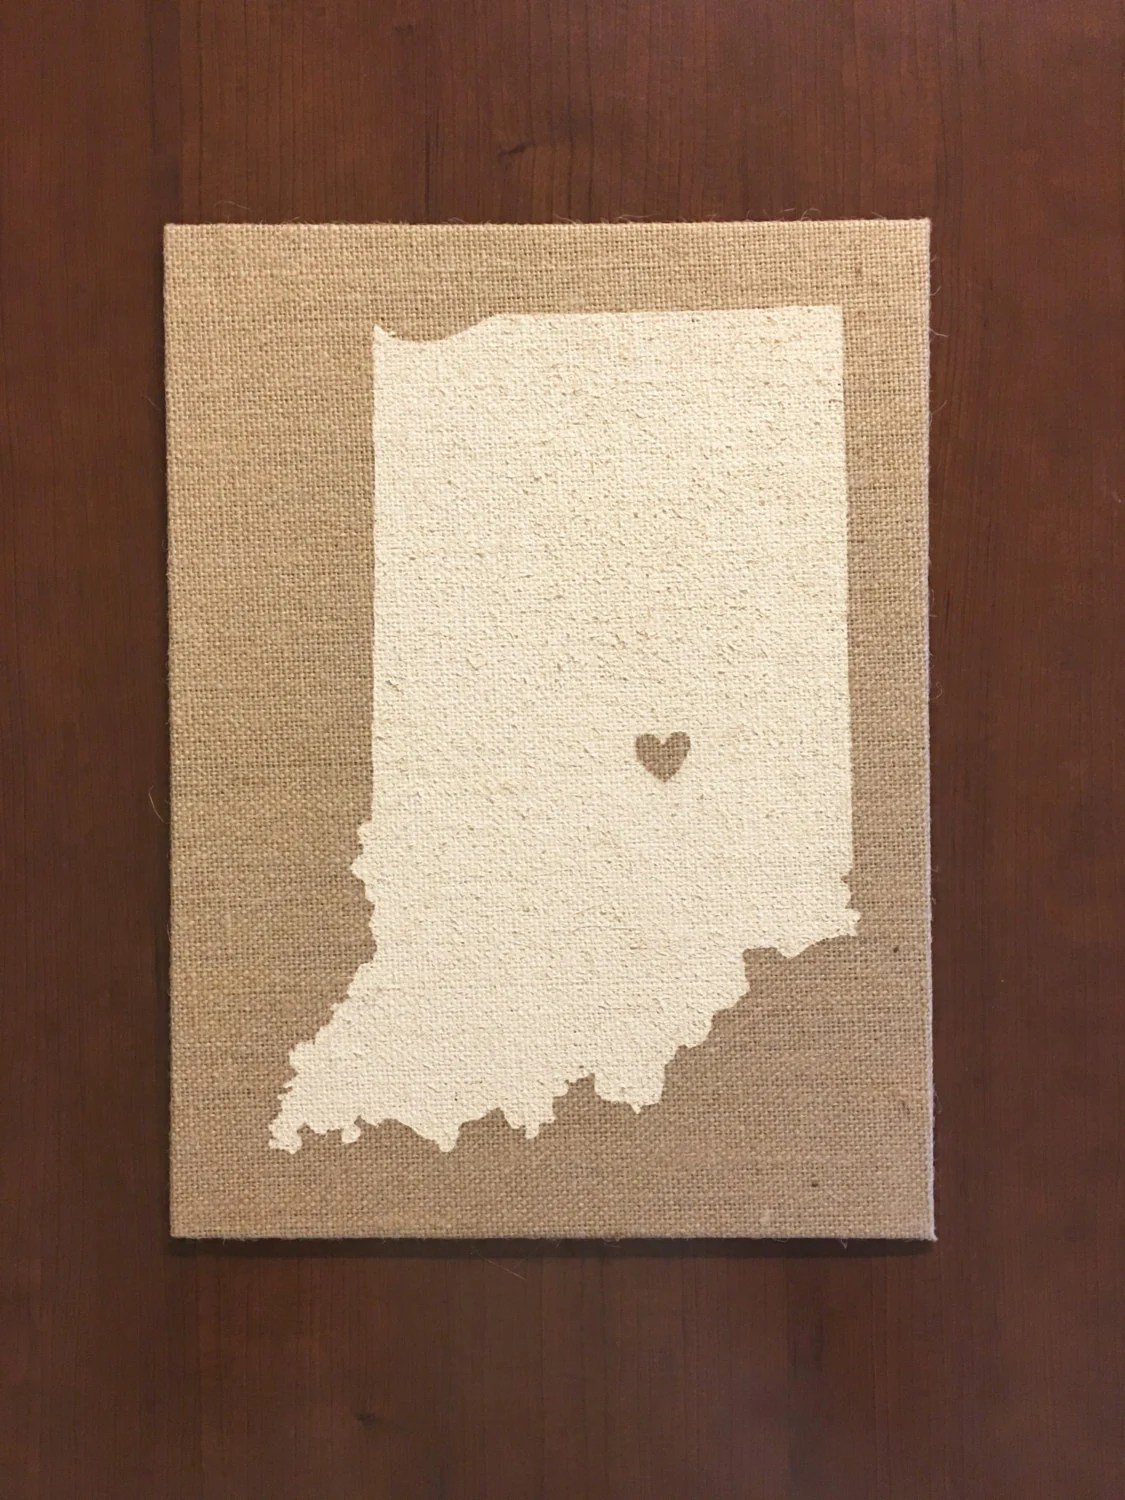 Best Your State And Location Home Decor By Kaysmithdesign On Etsy This Month